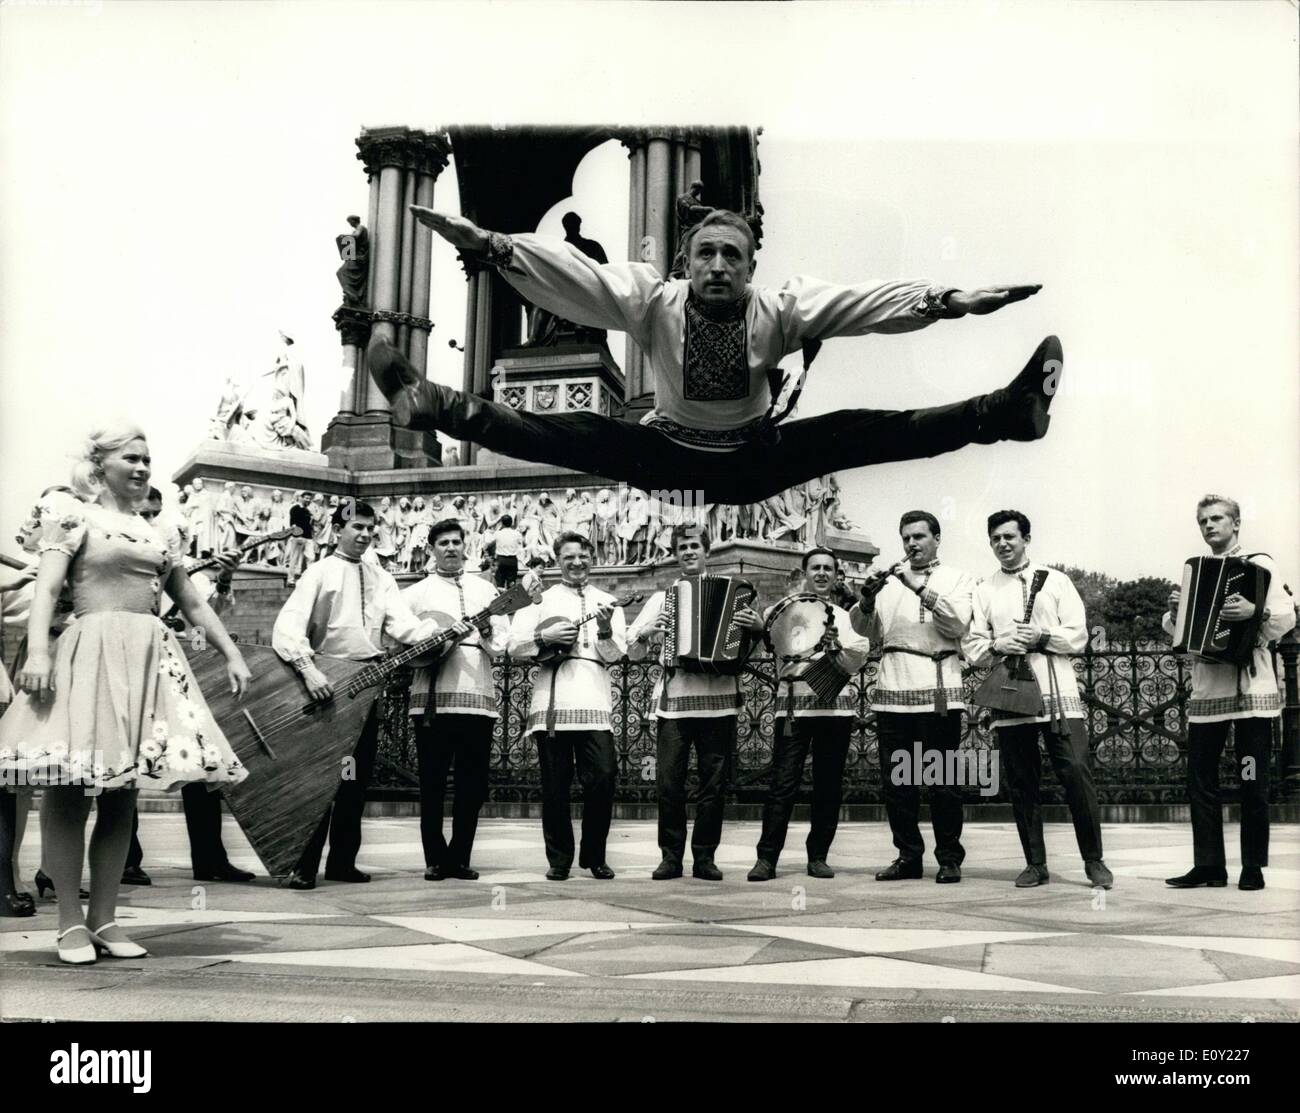 Jun. 06, 1968 - Artistes from the Russian Balalaika Orchestra rehearse for tonight's opening performance: The famous Stock Photo